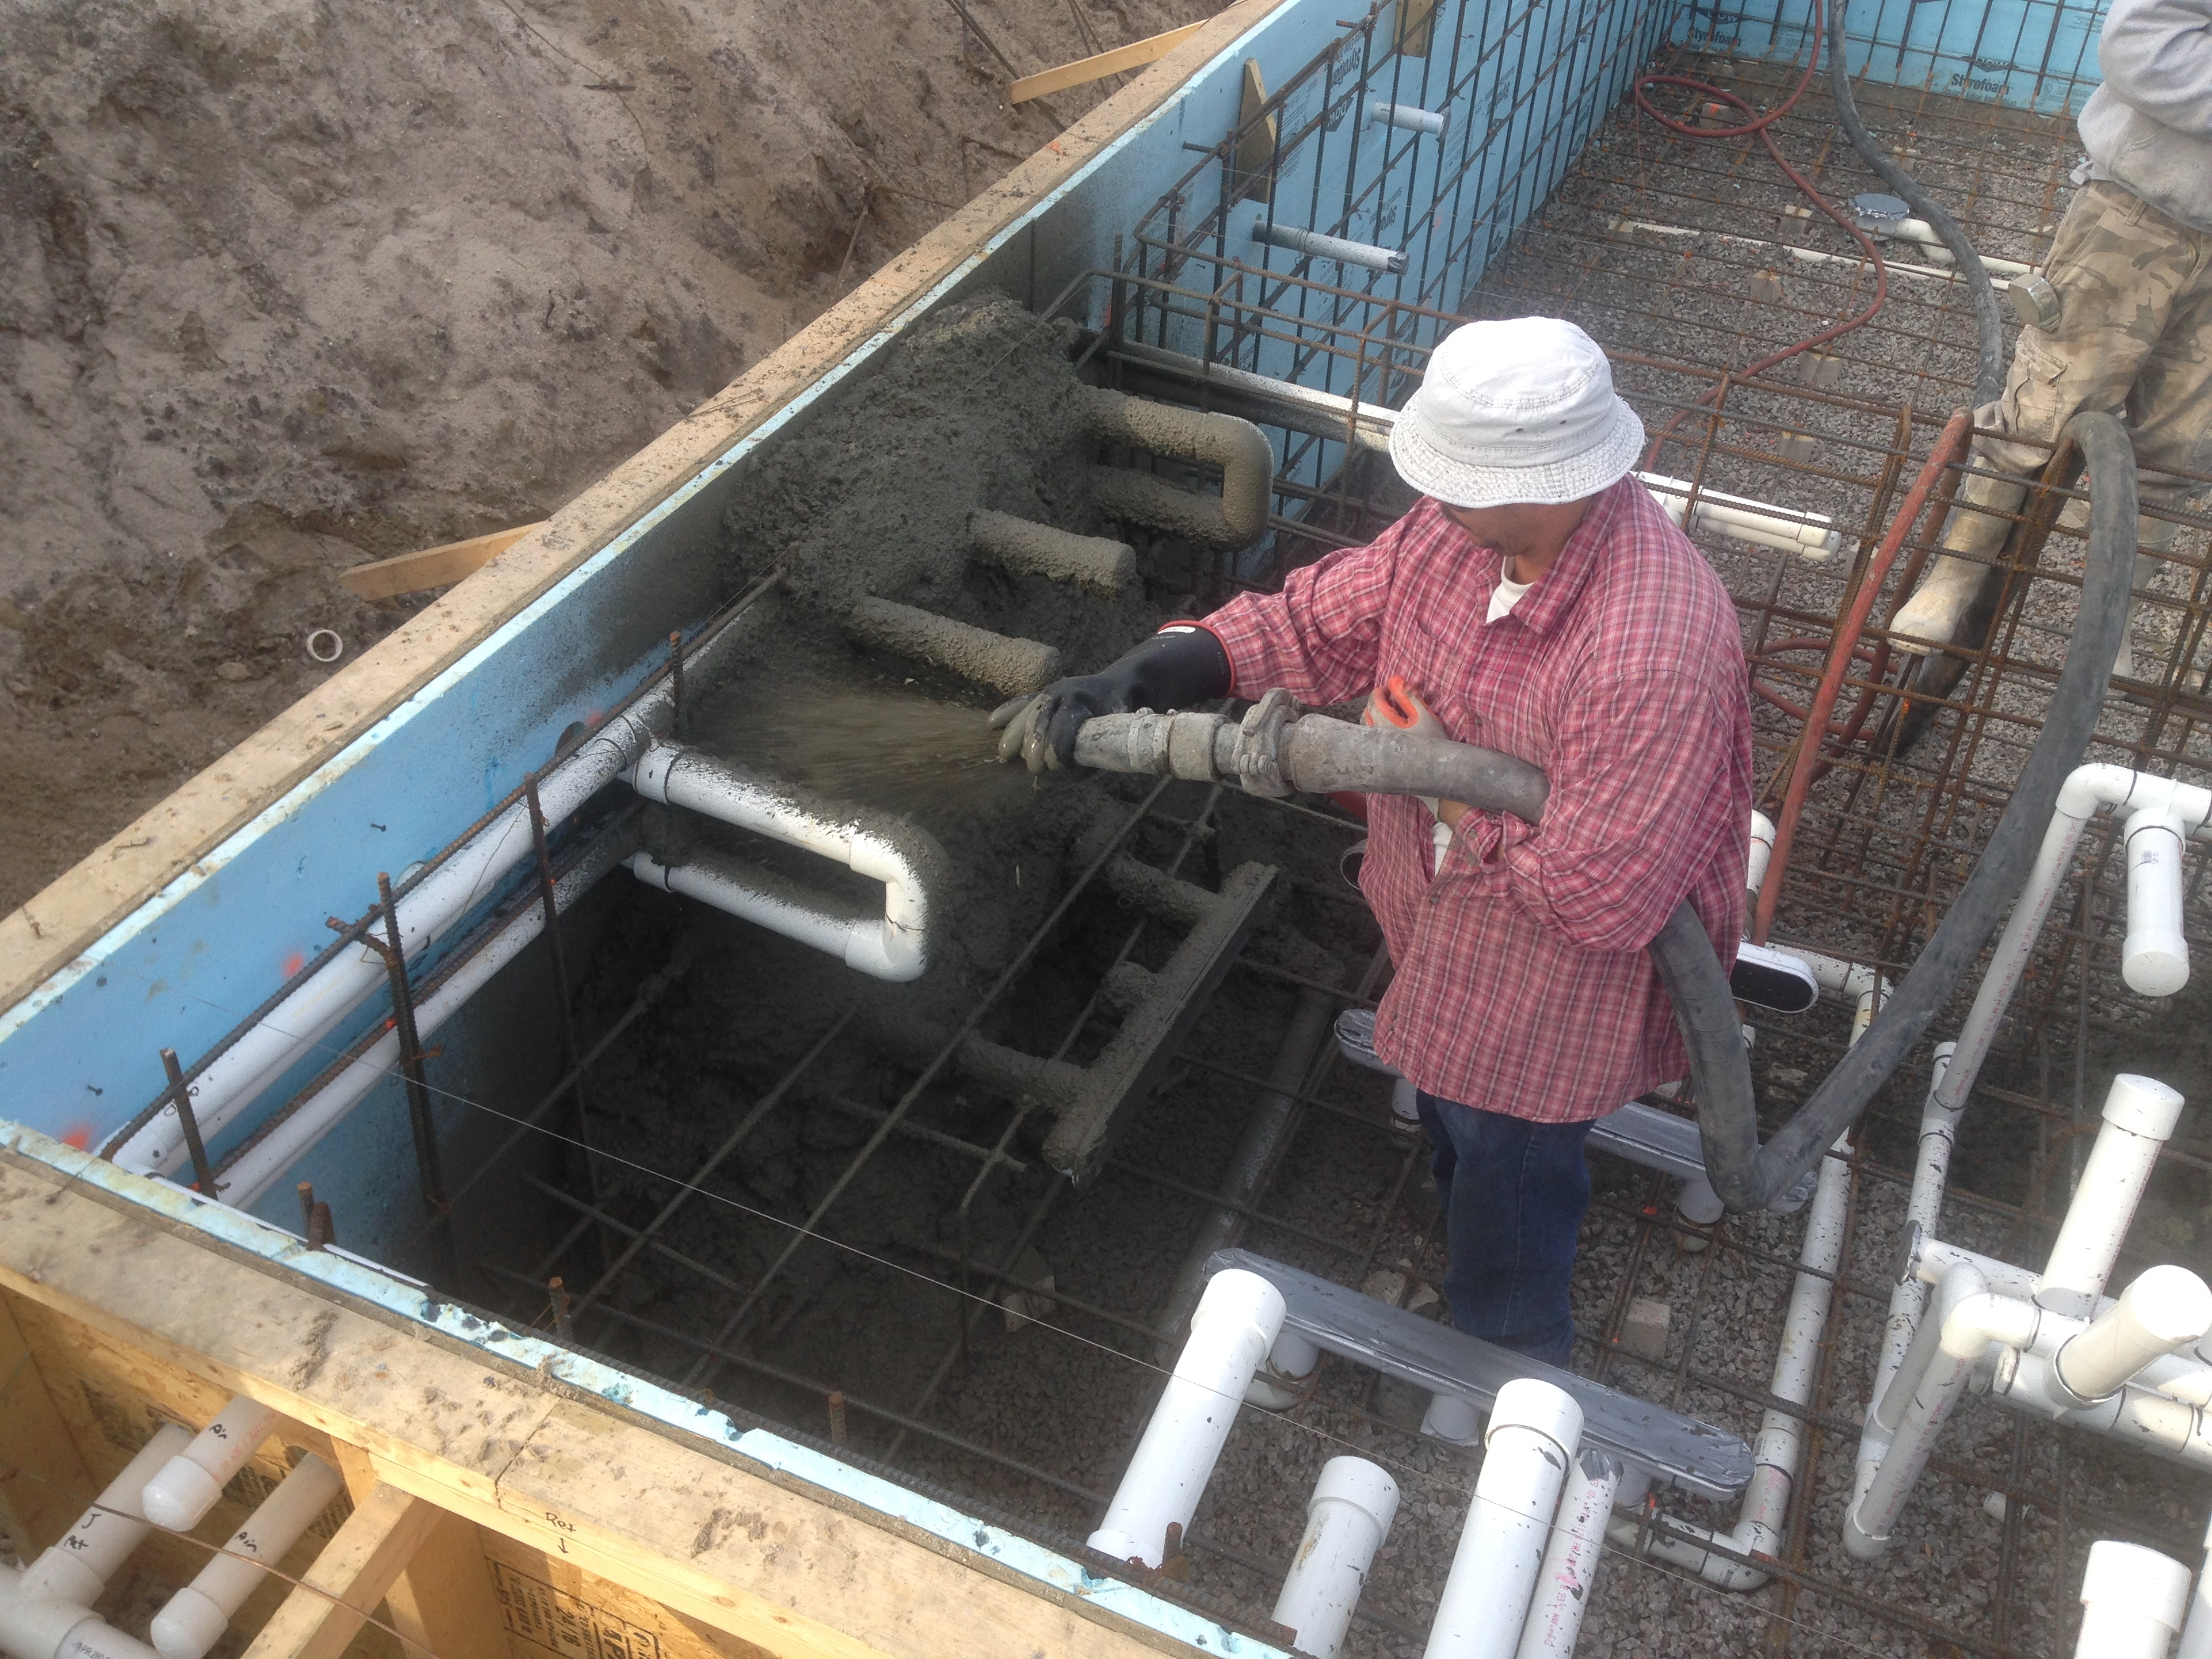 #4 steel rebar and plumbing is in place. Applying 4,000 PSI Concrete with Shotcrete Process